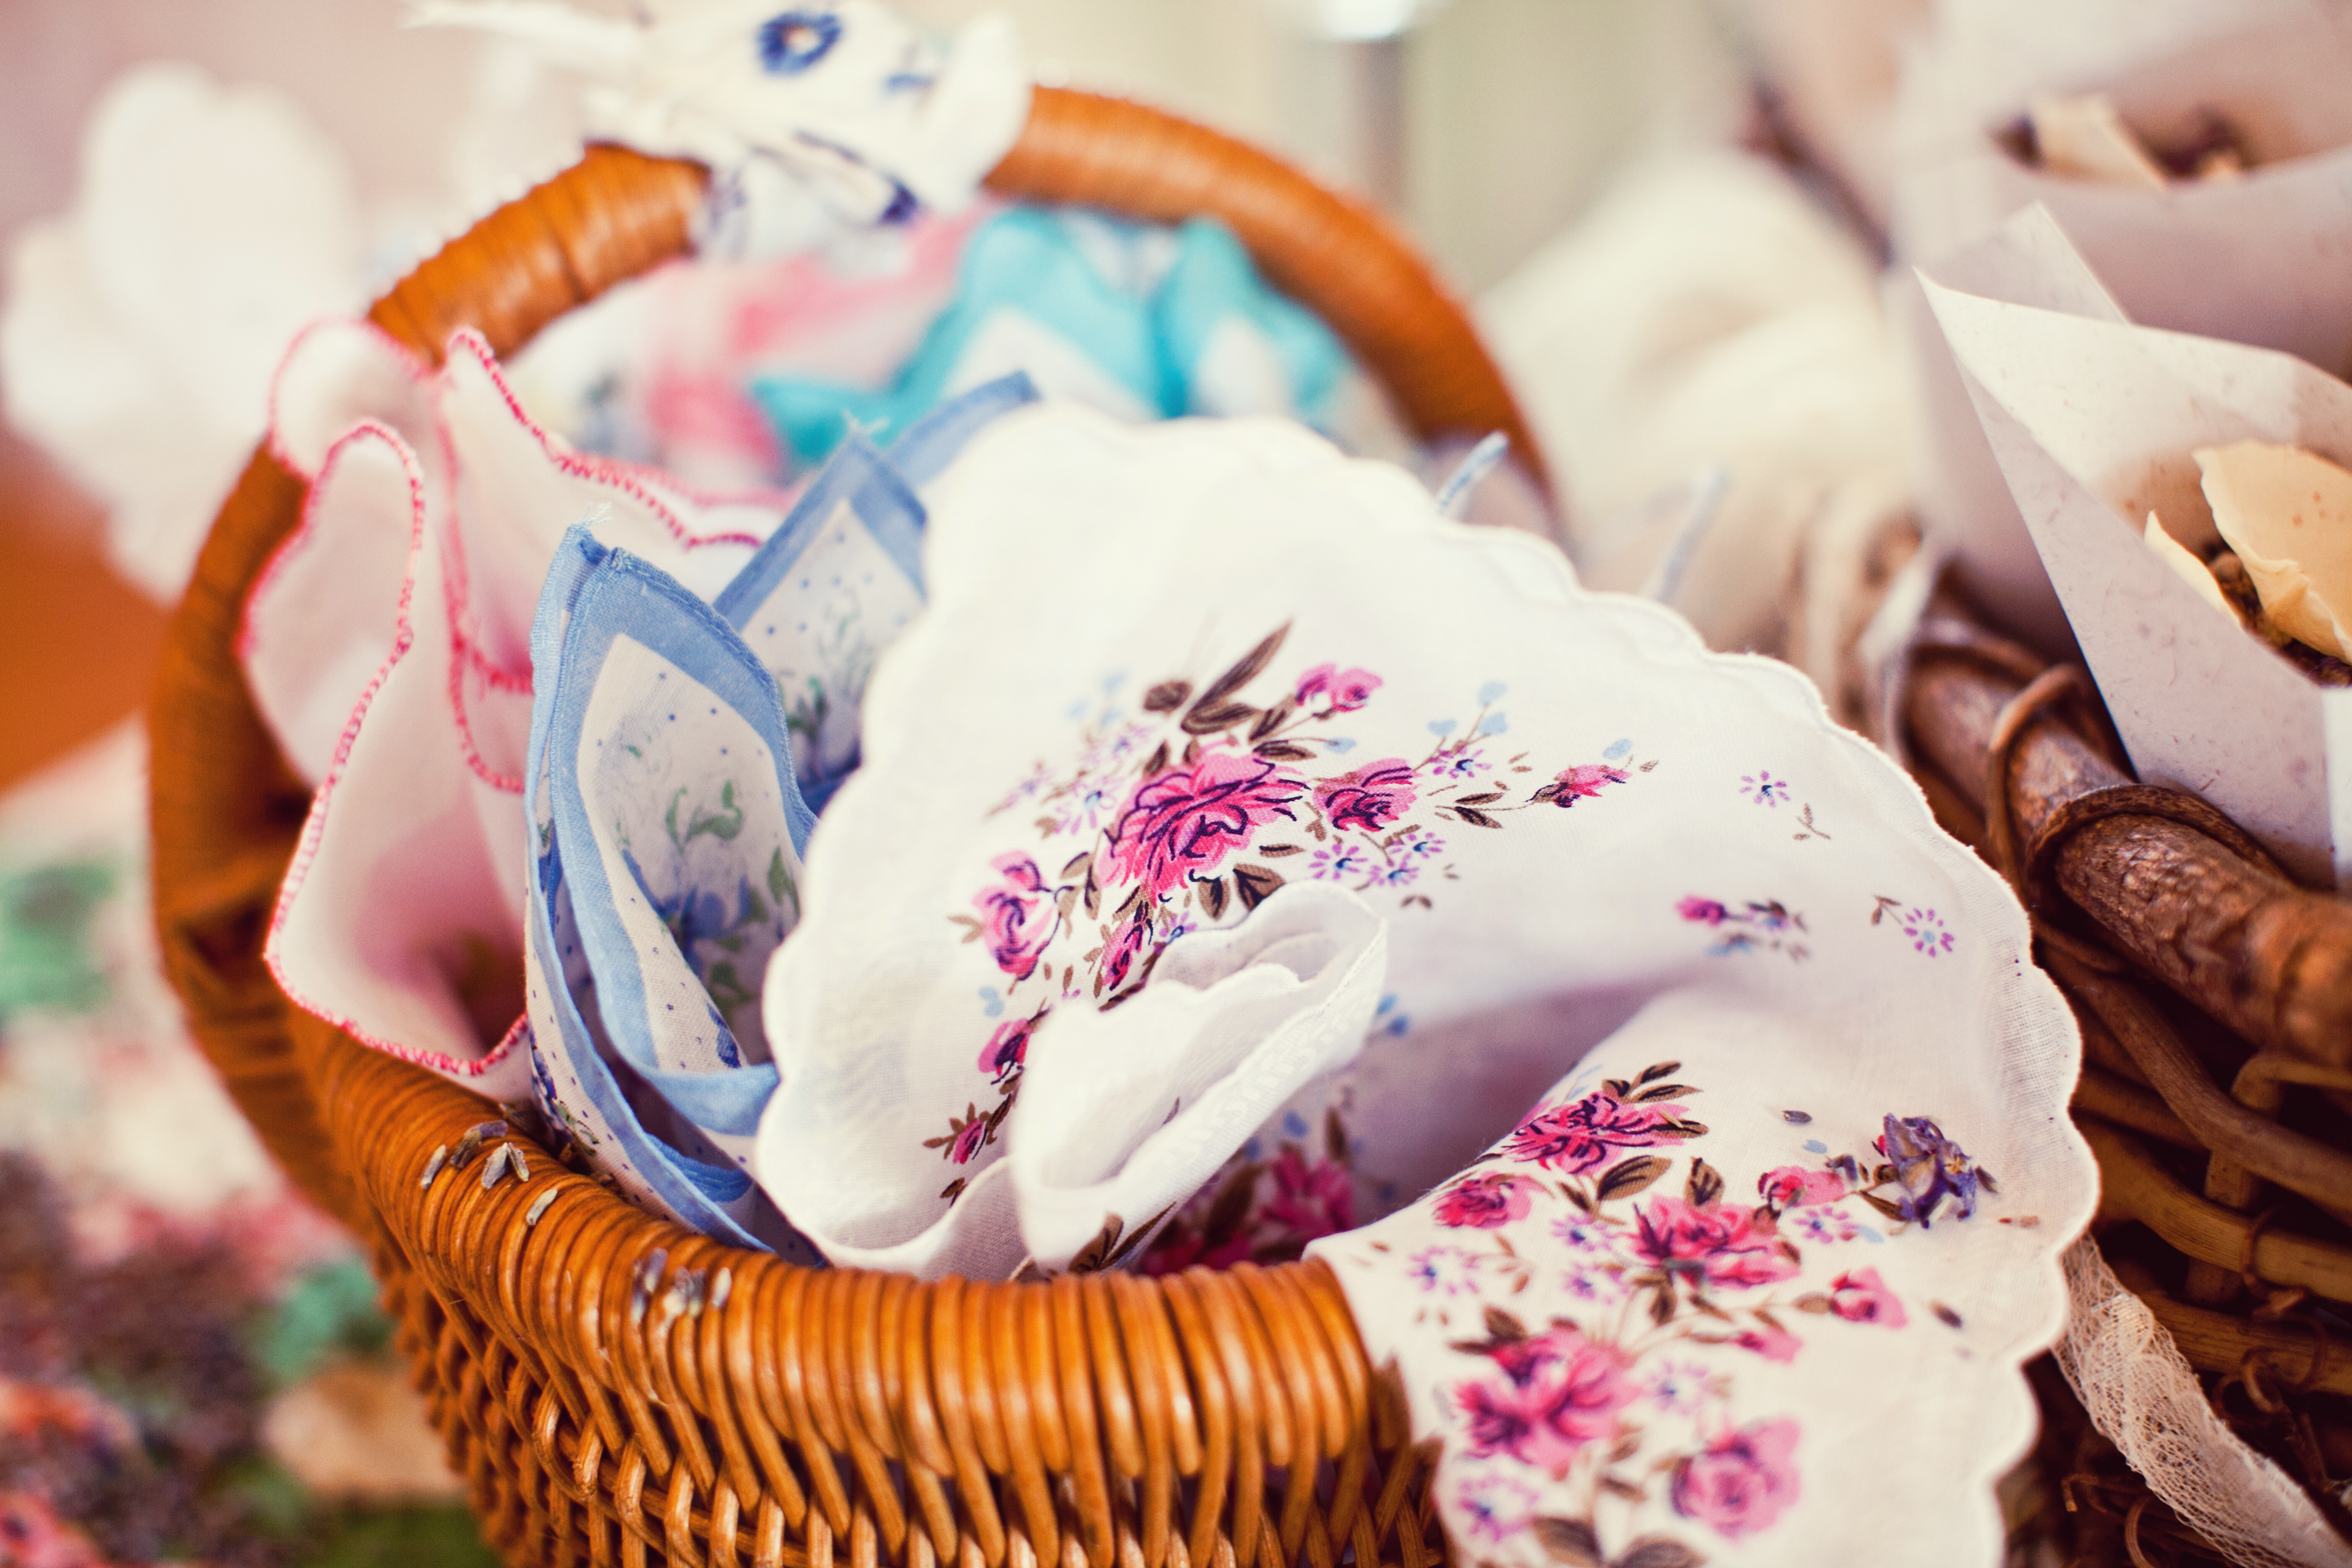 Vintage, Hankie, Heirloom, Intimate, Katelyn andie